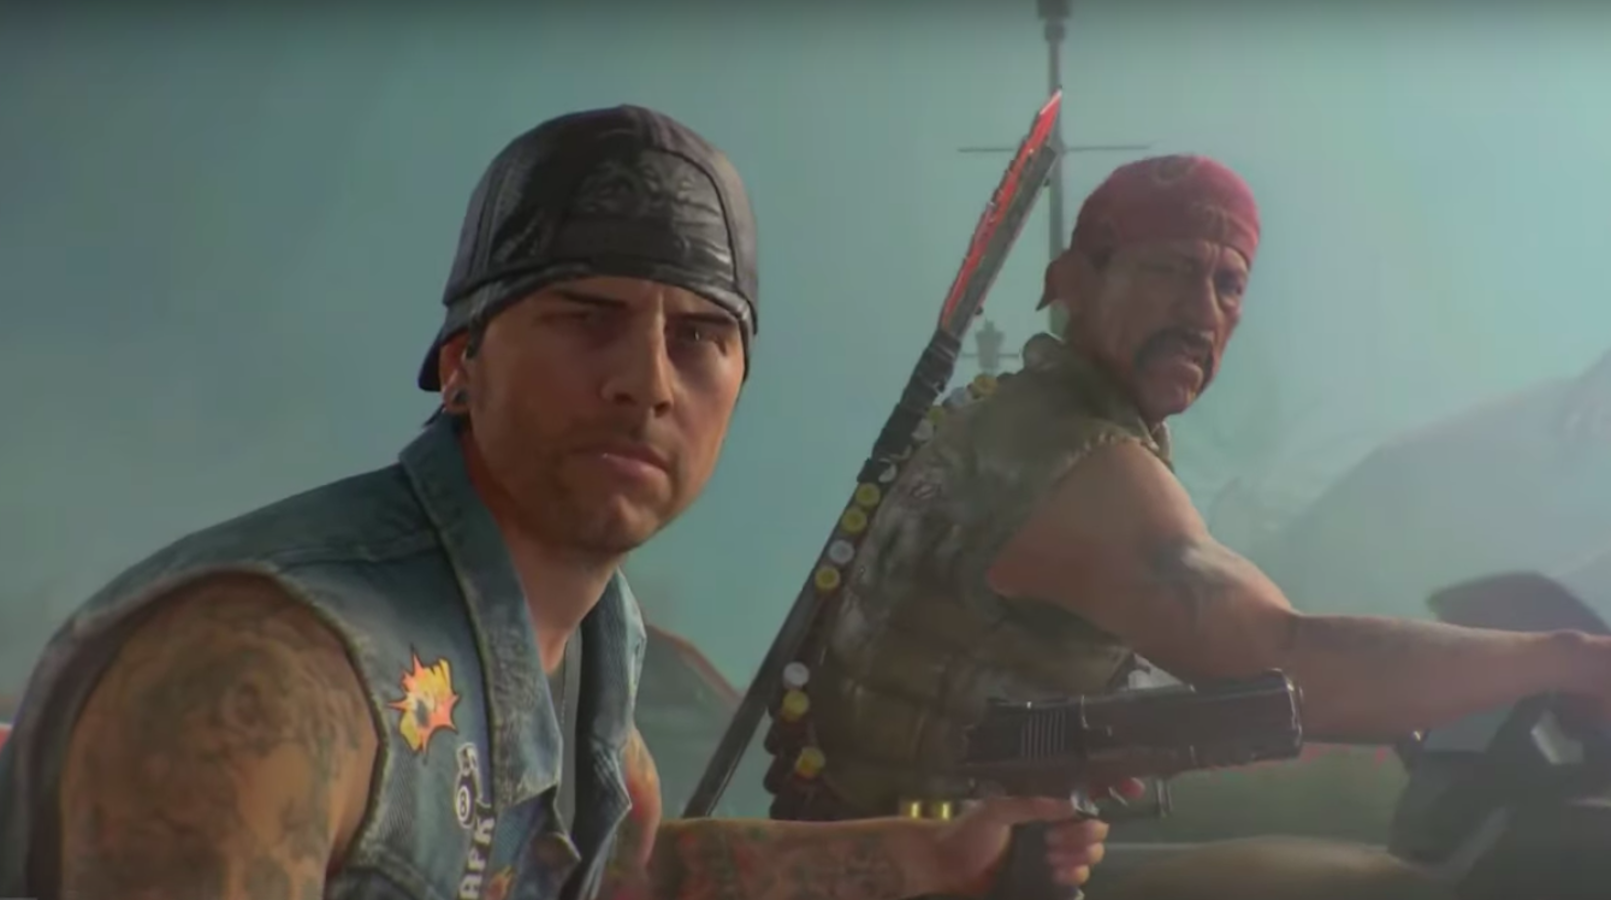 Avenged Sevenfold's M. Shadows Gets Playable Character in 'Call of Duty'